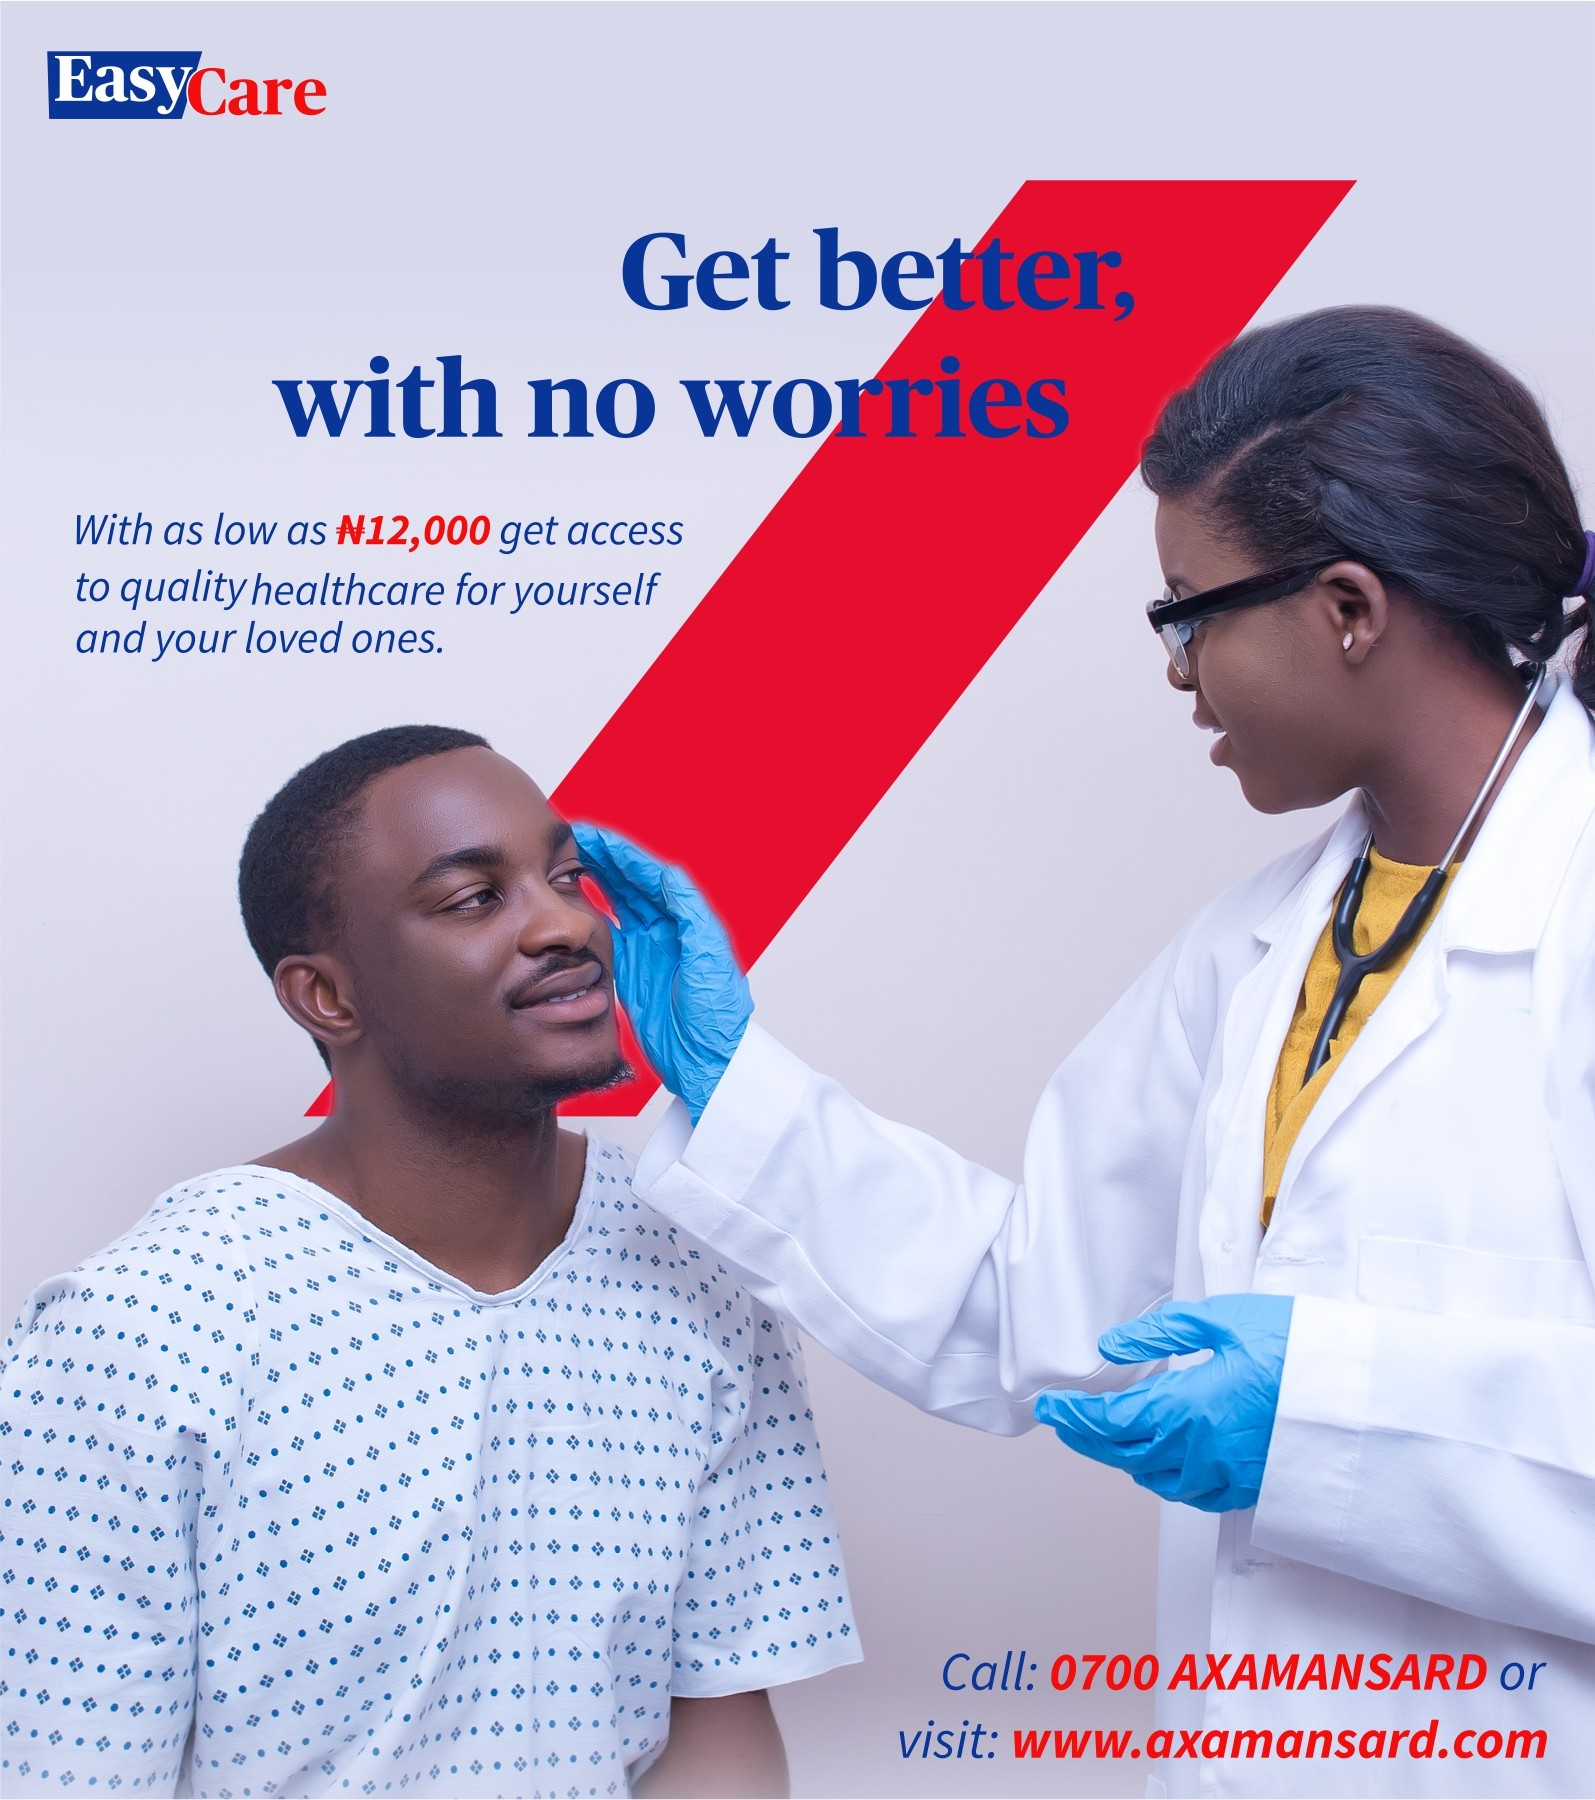 AXA Mansard Health promotes affordable healthcare with the launch of Easy Care Health Plan